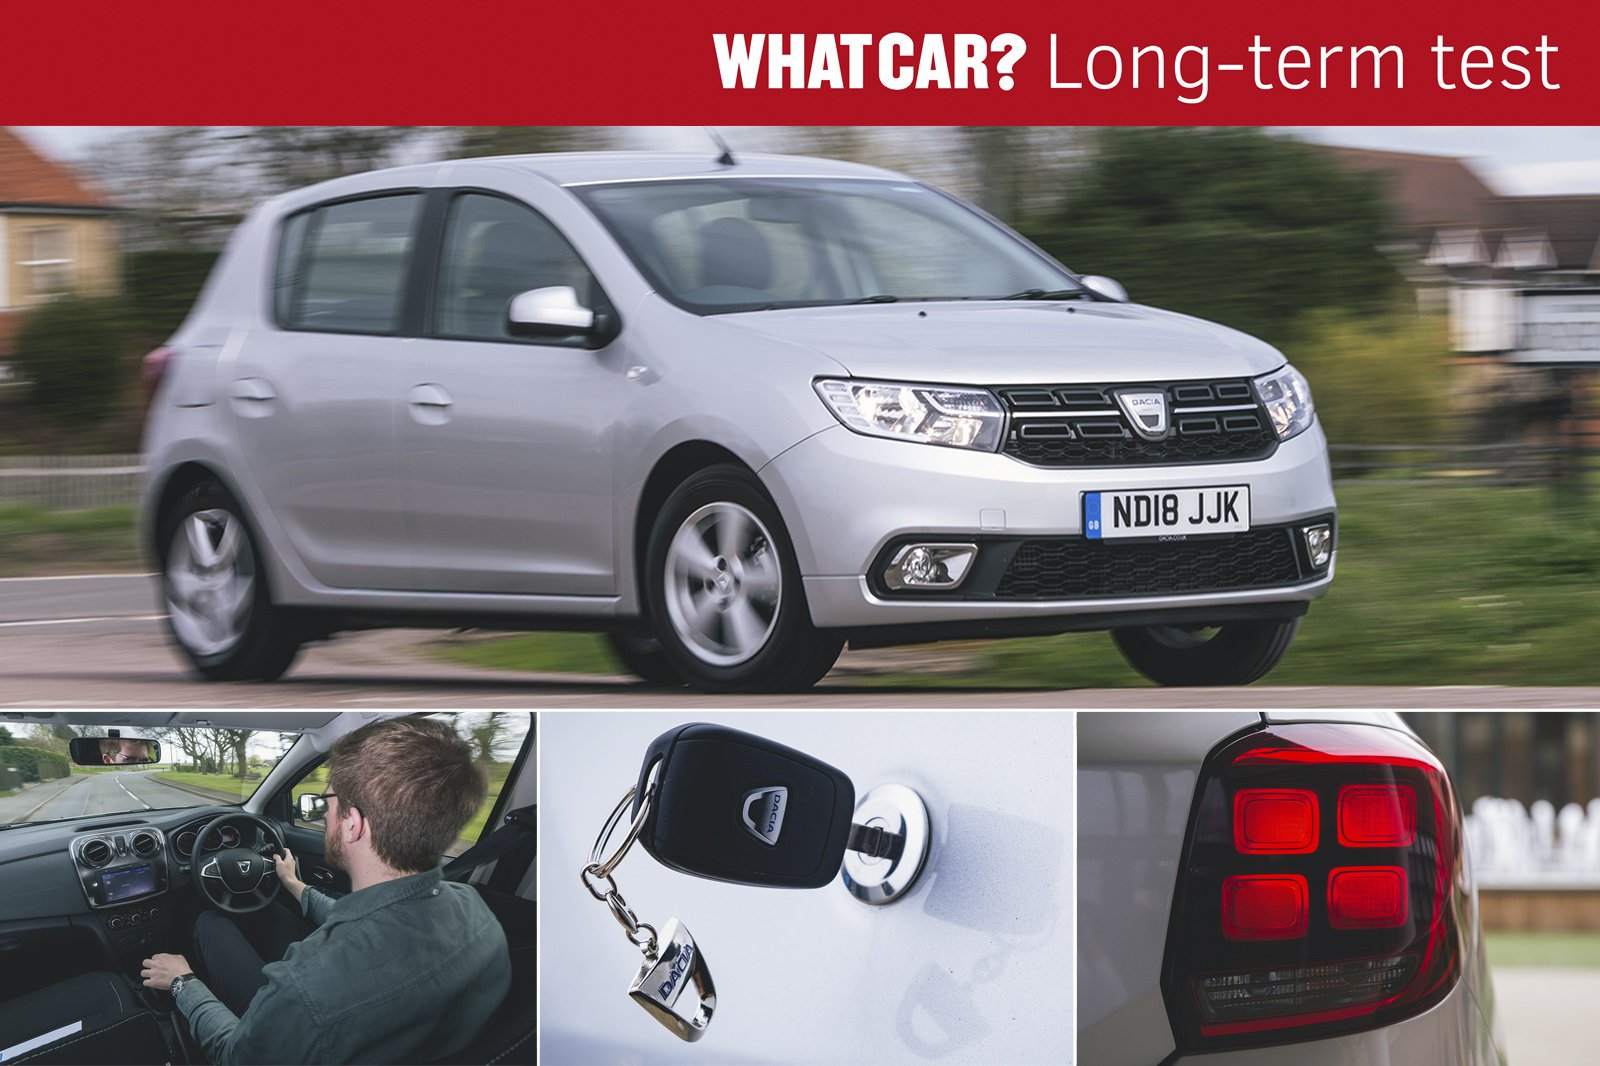 Used Dacia Sandero (13-present) long term test review